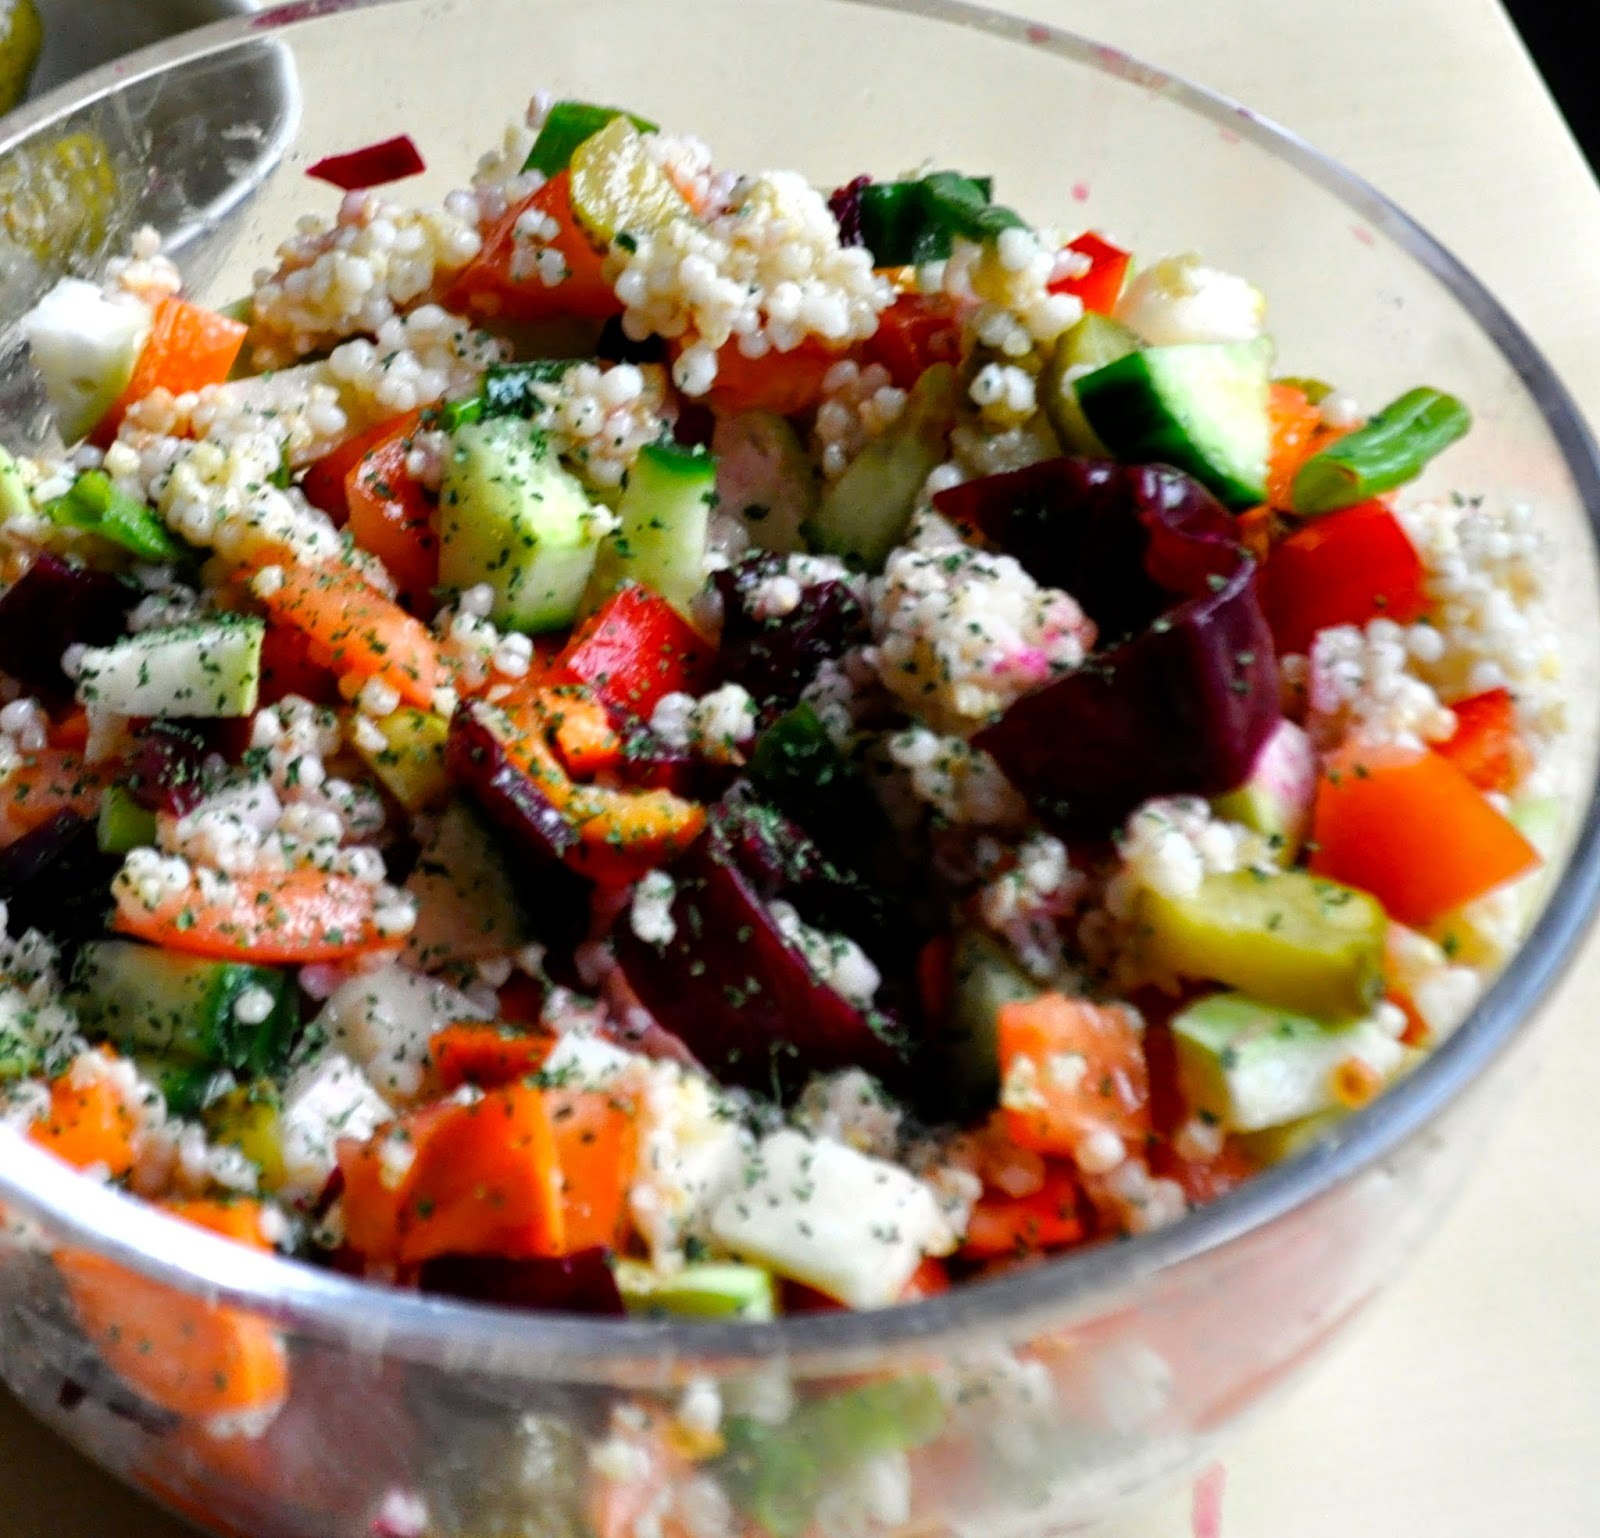 Quinoa, barley and pickled vegetable salad